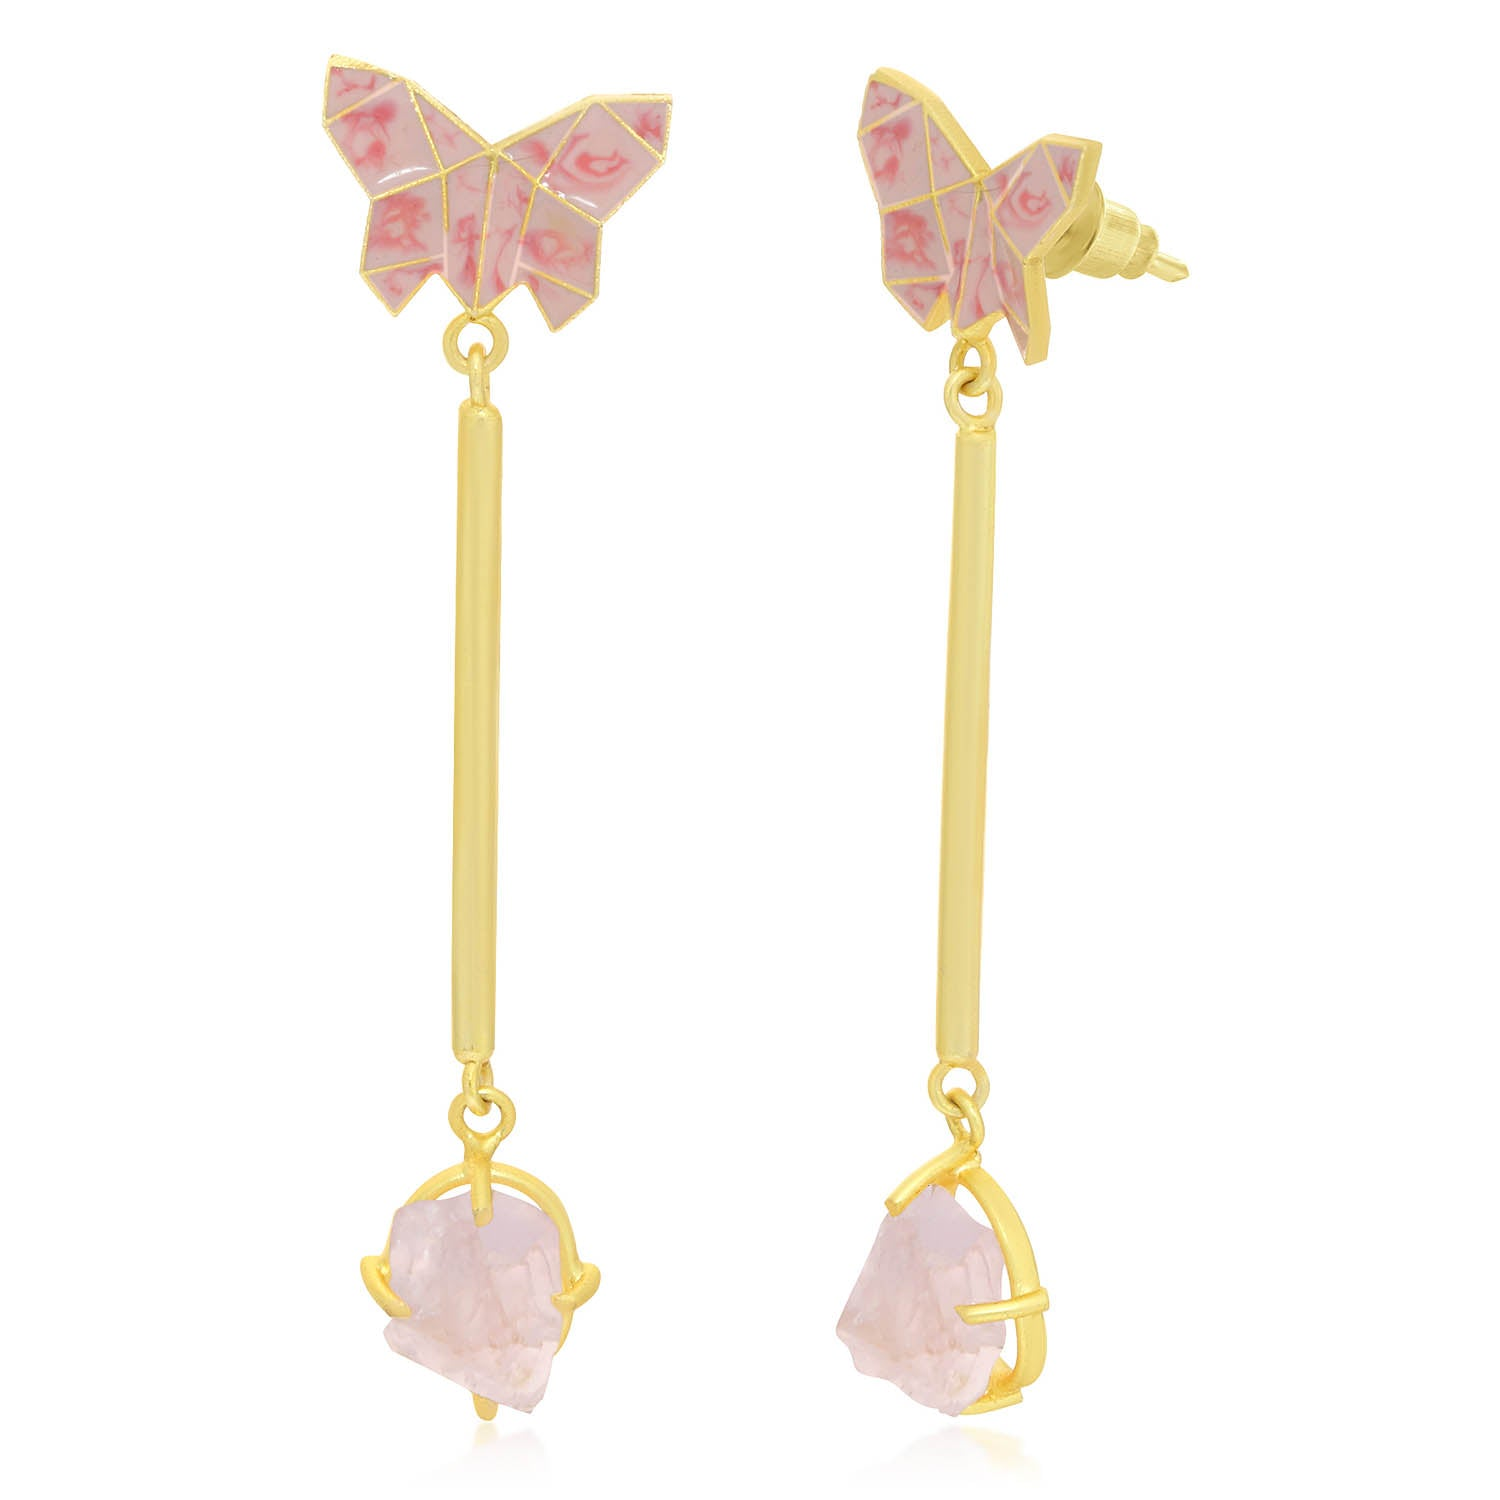 Sukkhi Classy Gold Plated Butterfly Dangle Earring For Women-SUKKHI1-Earring